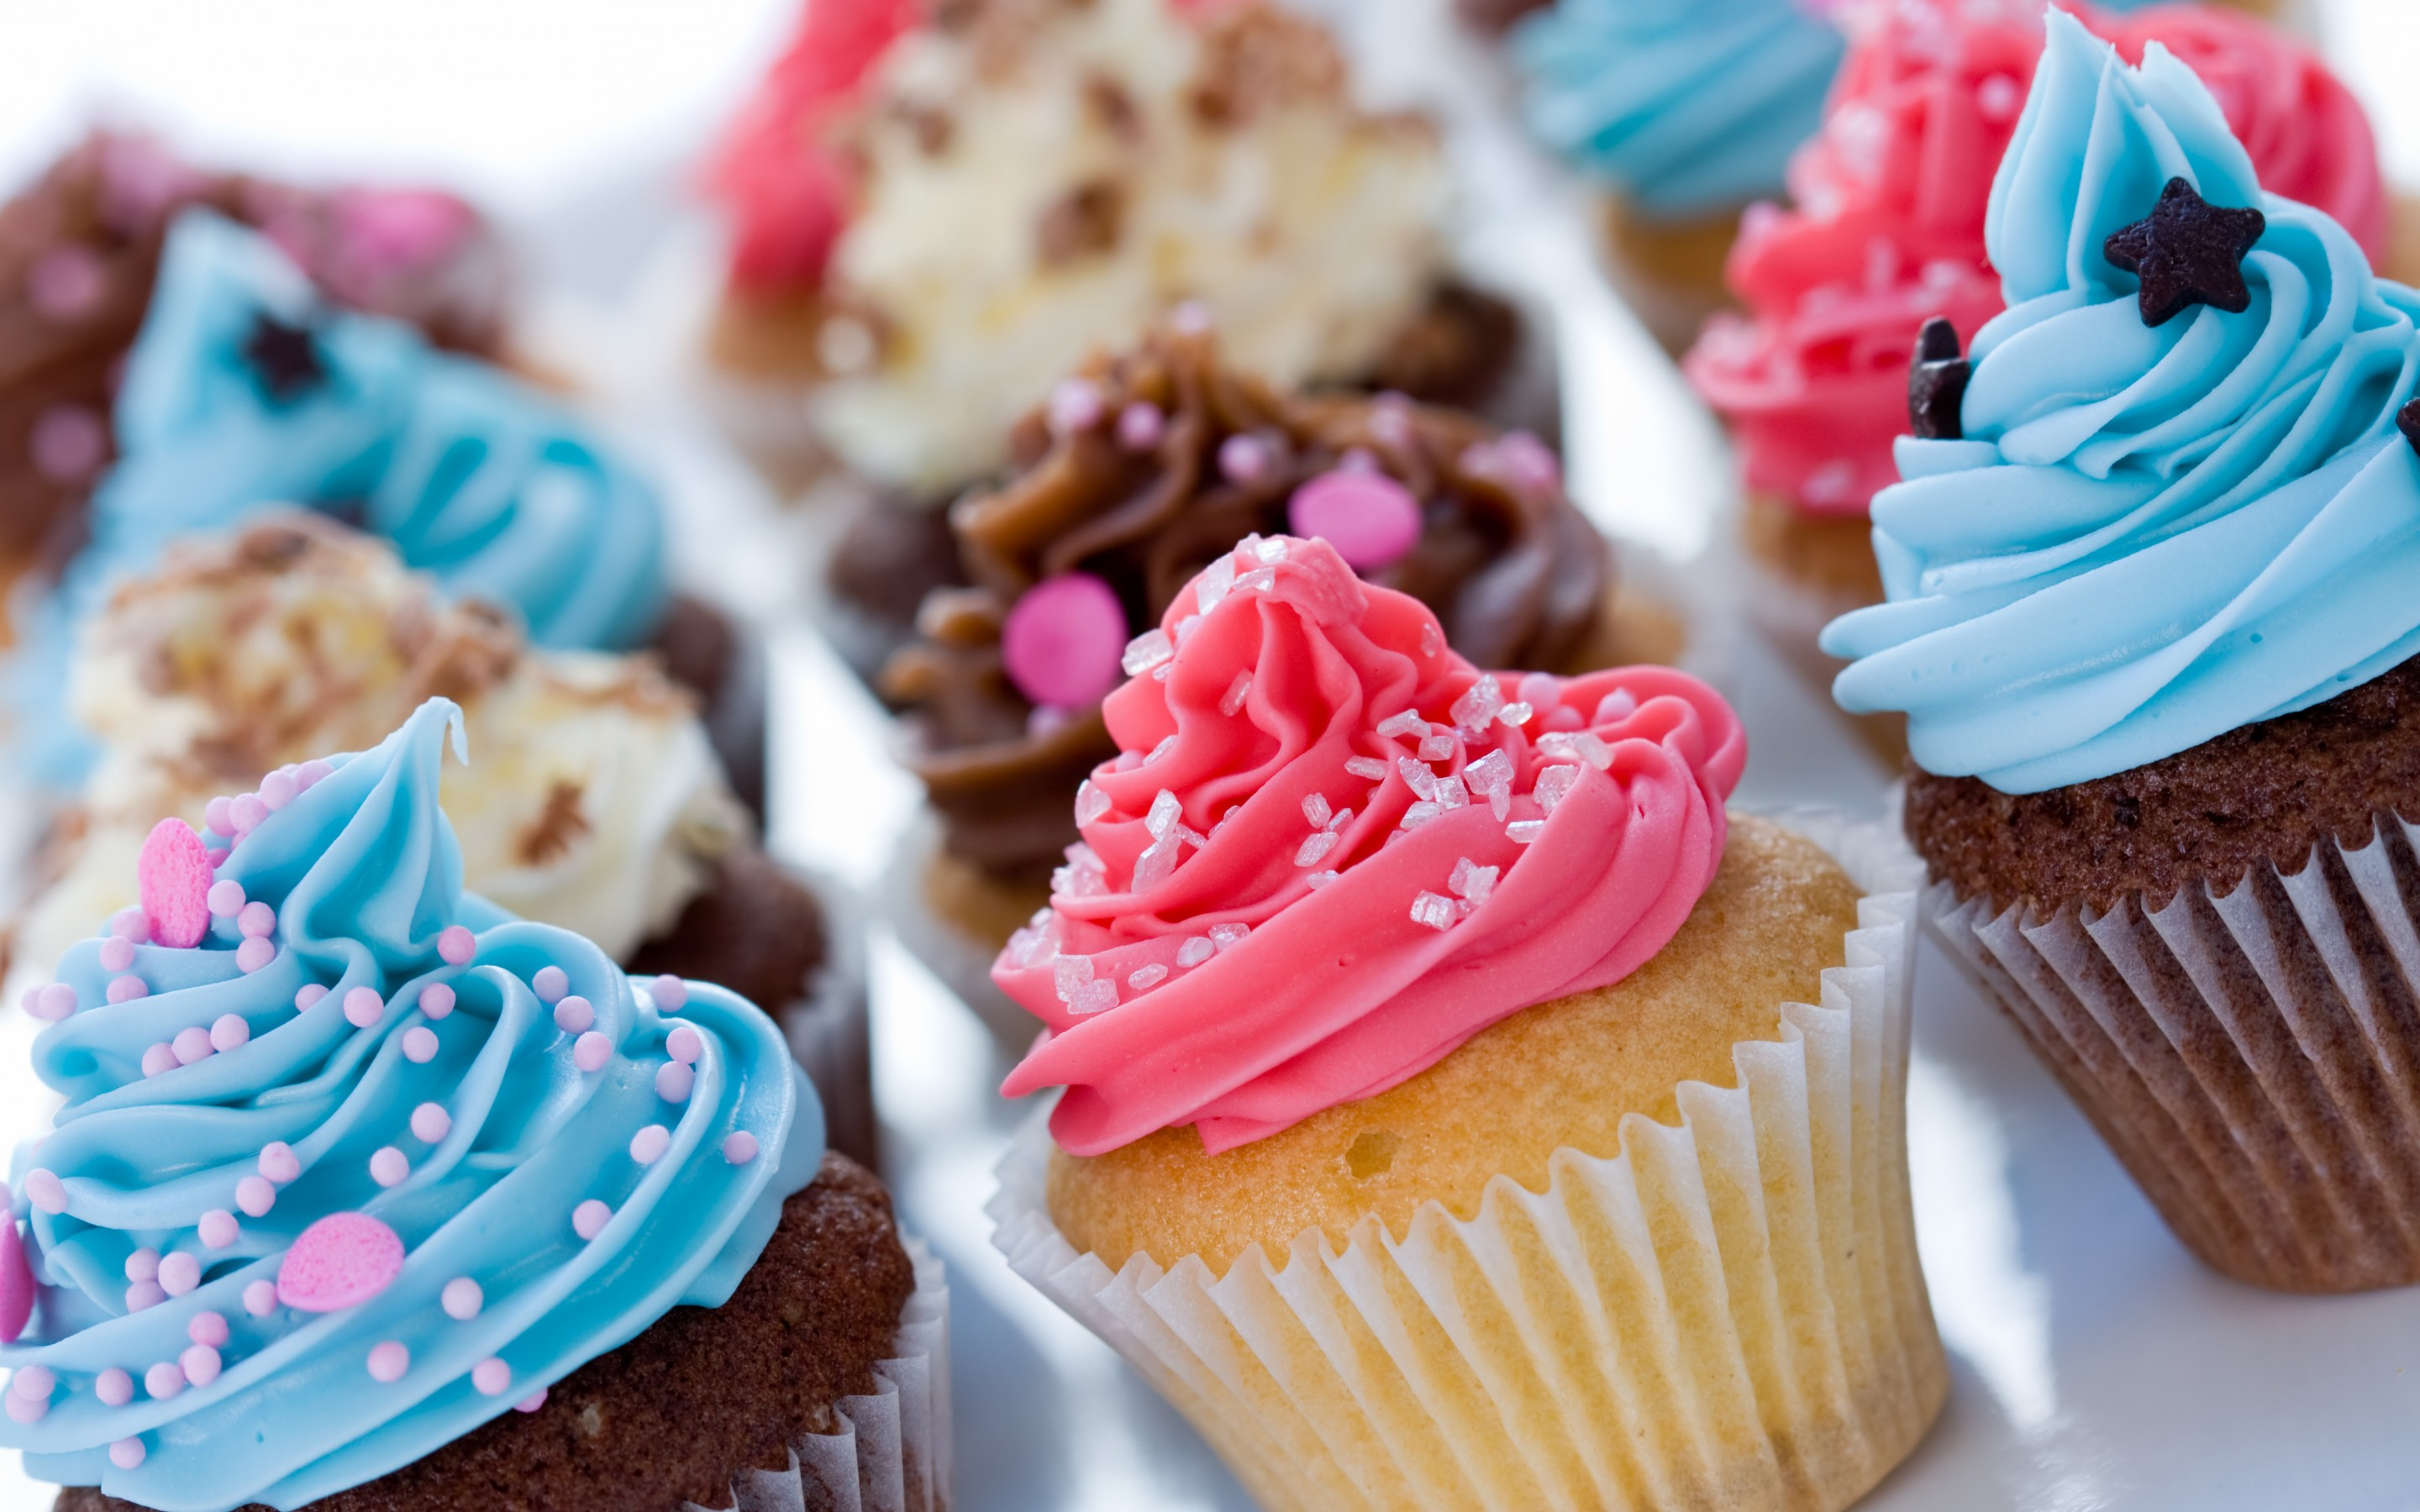 Cupcake HD Wallpaper | Background Image | 2880x1800 | ID:425279 - Wallpaper Abyss